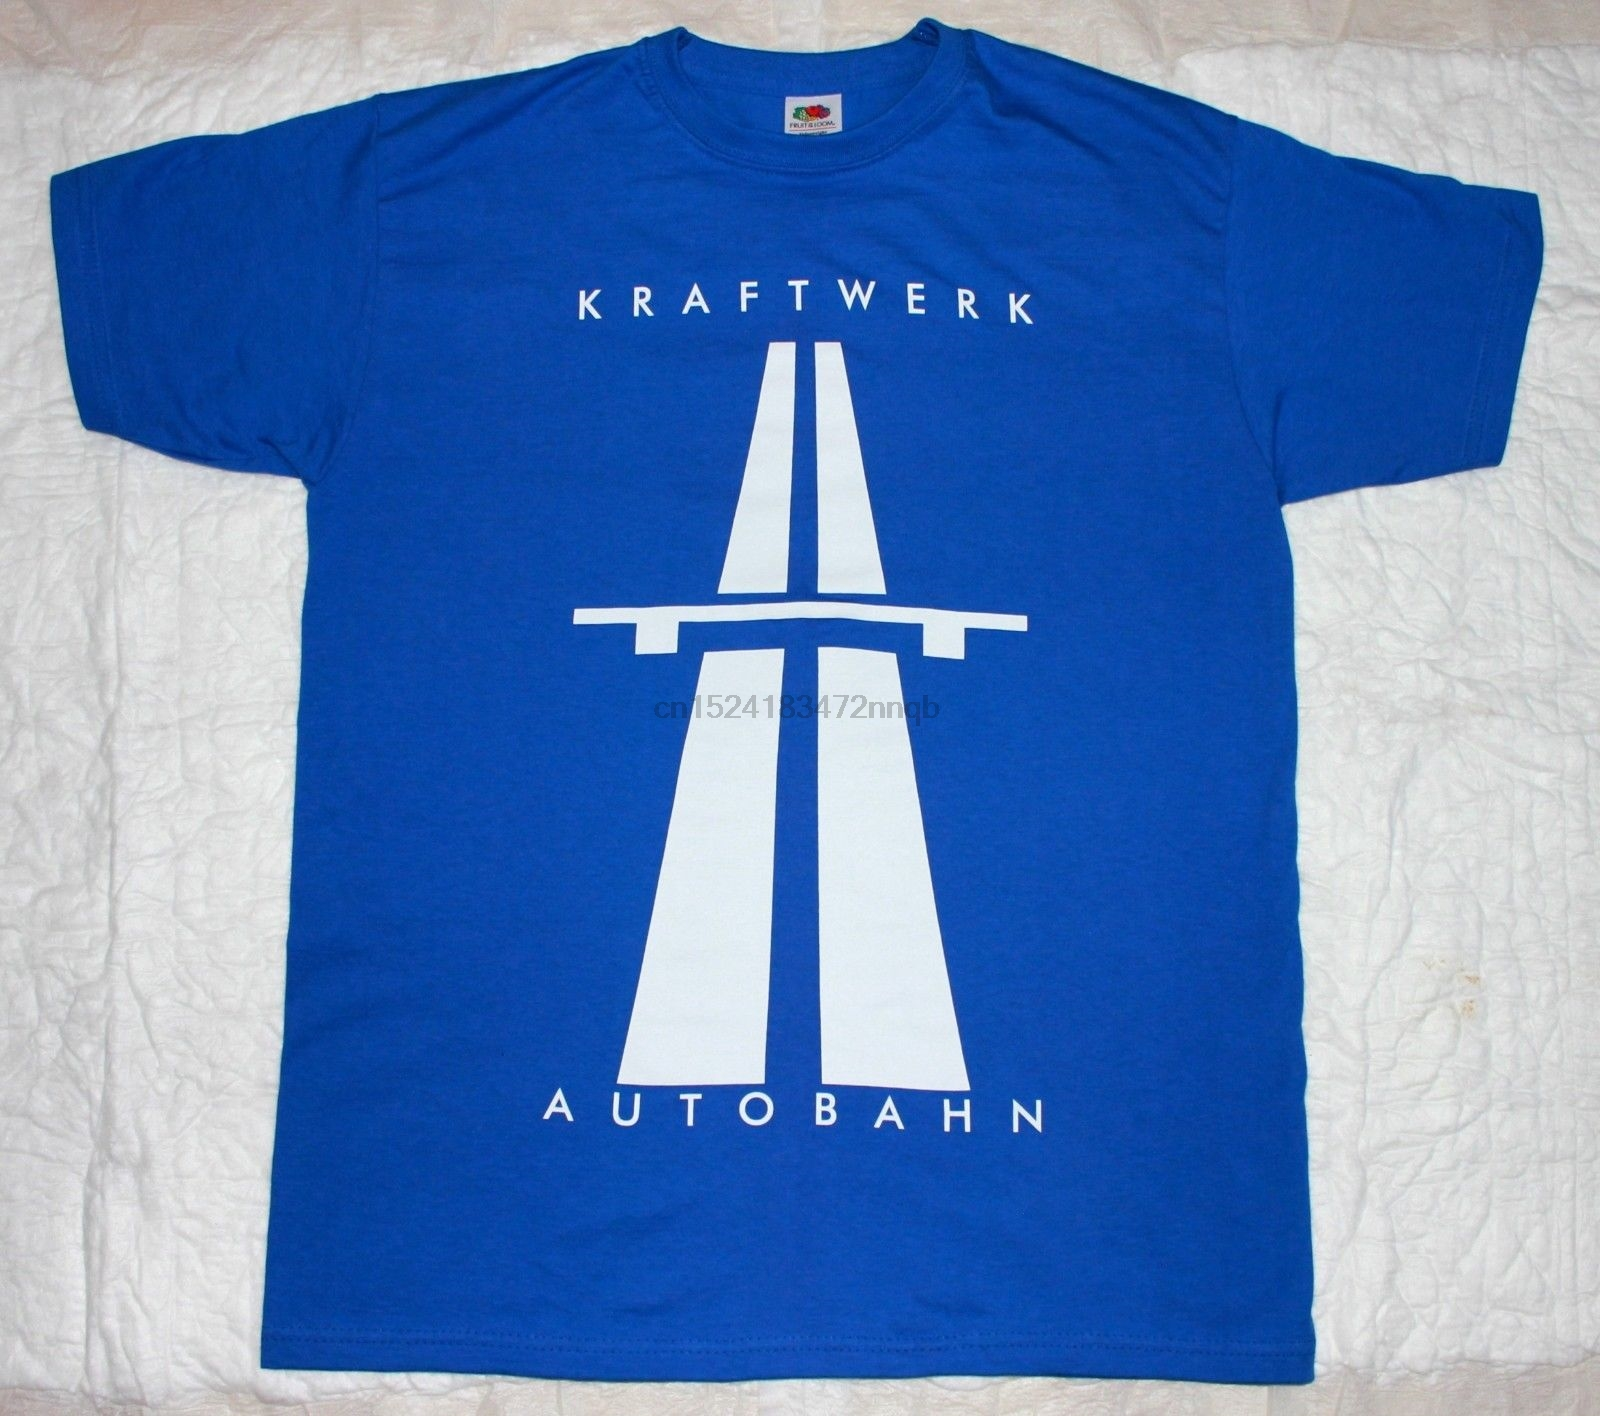 55af28522a23 KRAFTWERK AUTOBAHN74 KRAUTROCK ELECTRONIC SYNTHROCK ROYAL BLUE T SHIRT Top  Tee for Sale Natural Cotton Tee Shirts Fashion-in T-Shirts from Men s  Clothing ...